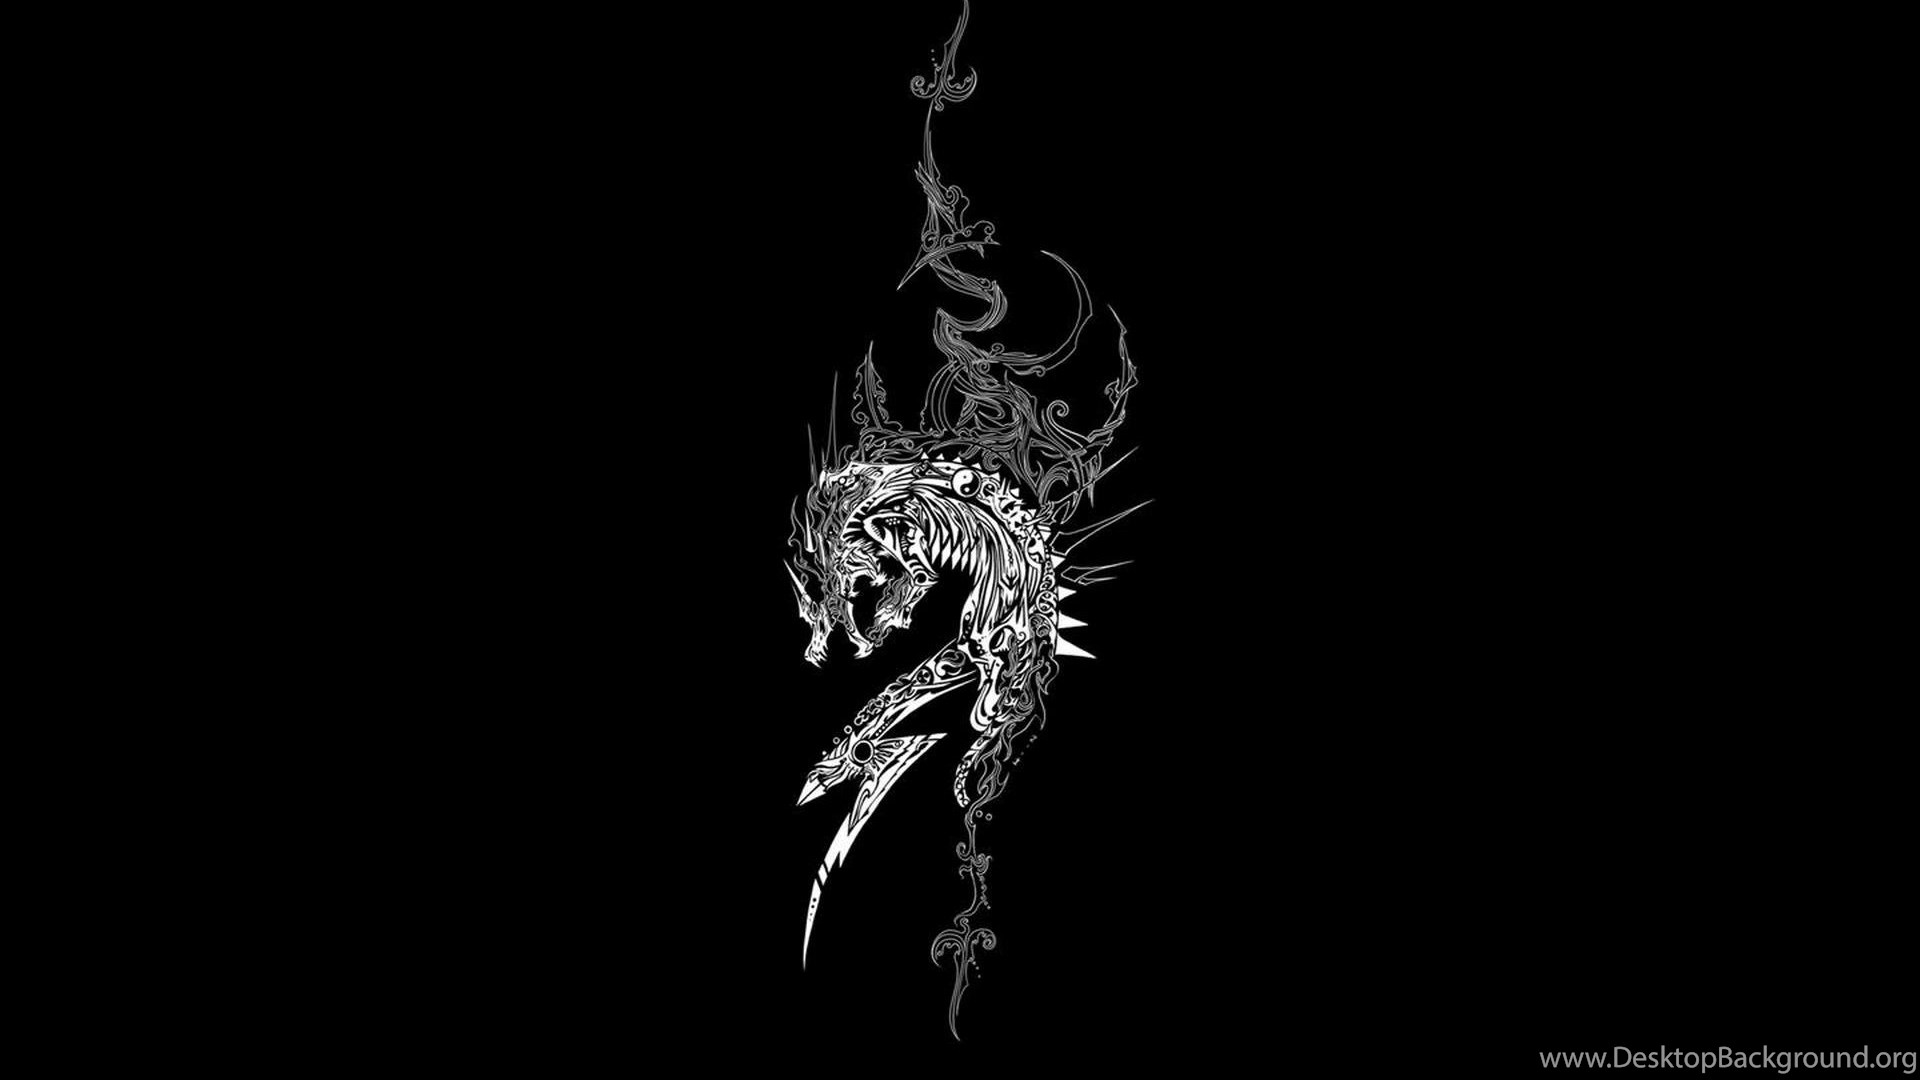 Lion Black And White Wallpapers Full Hd Desktop Background